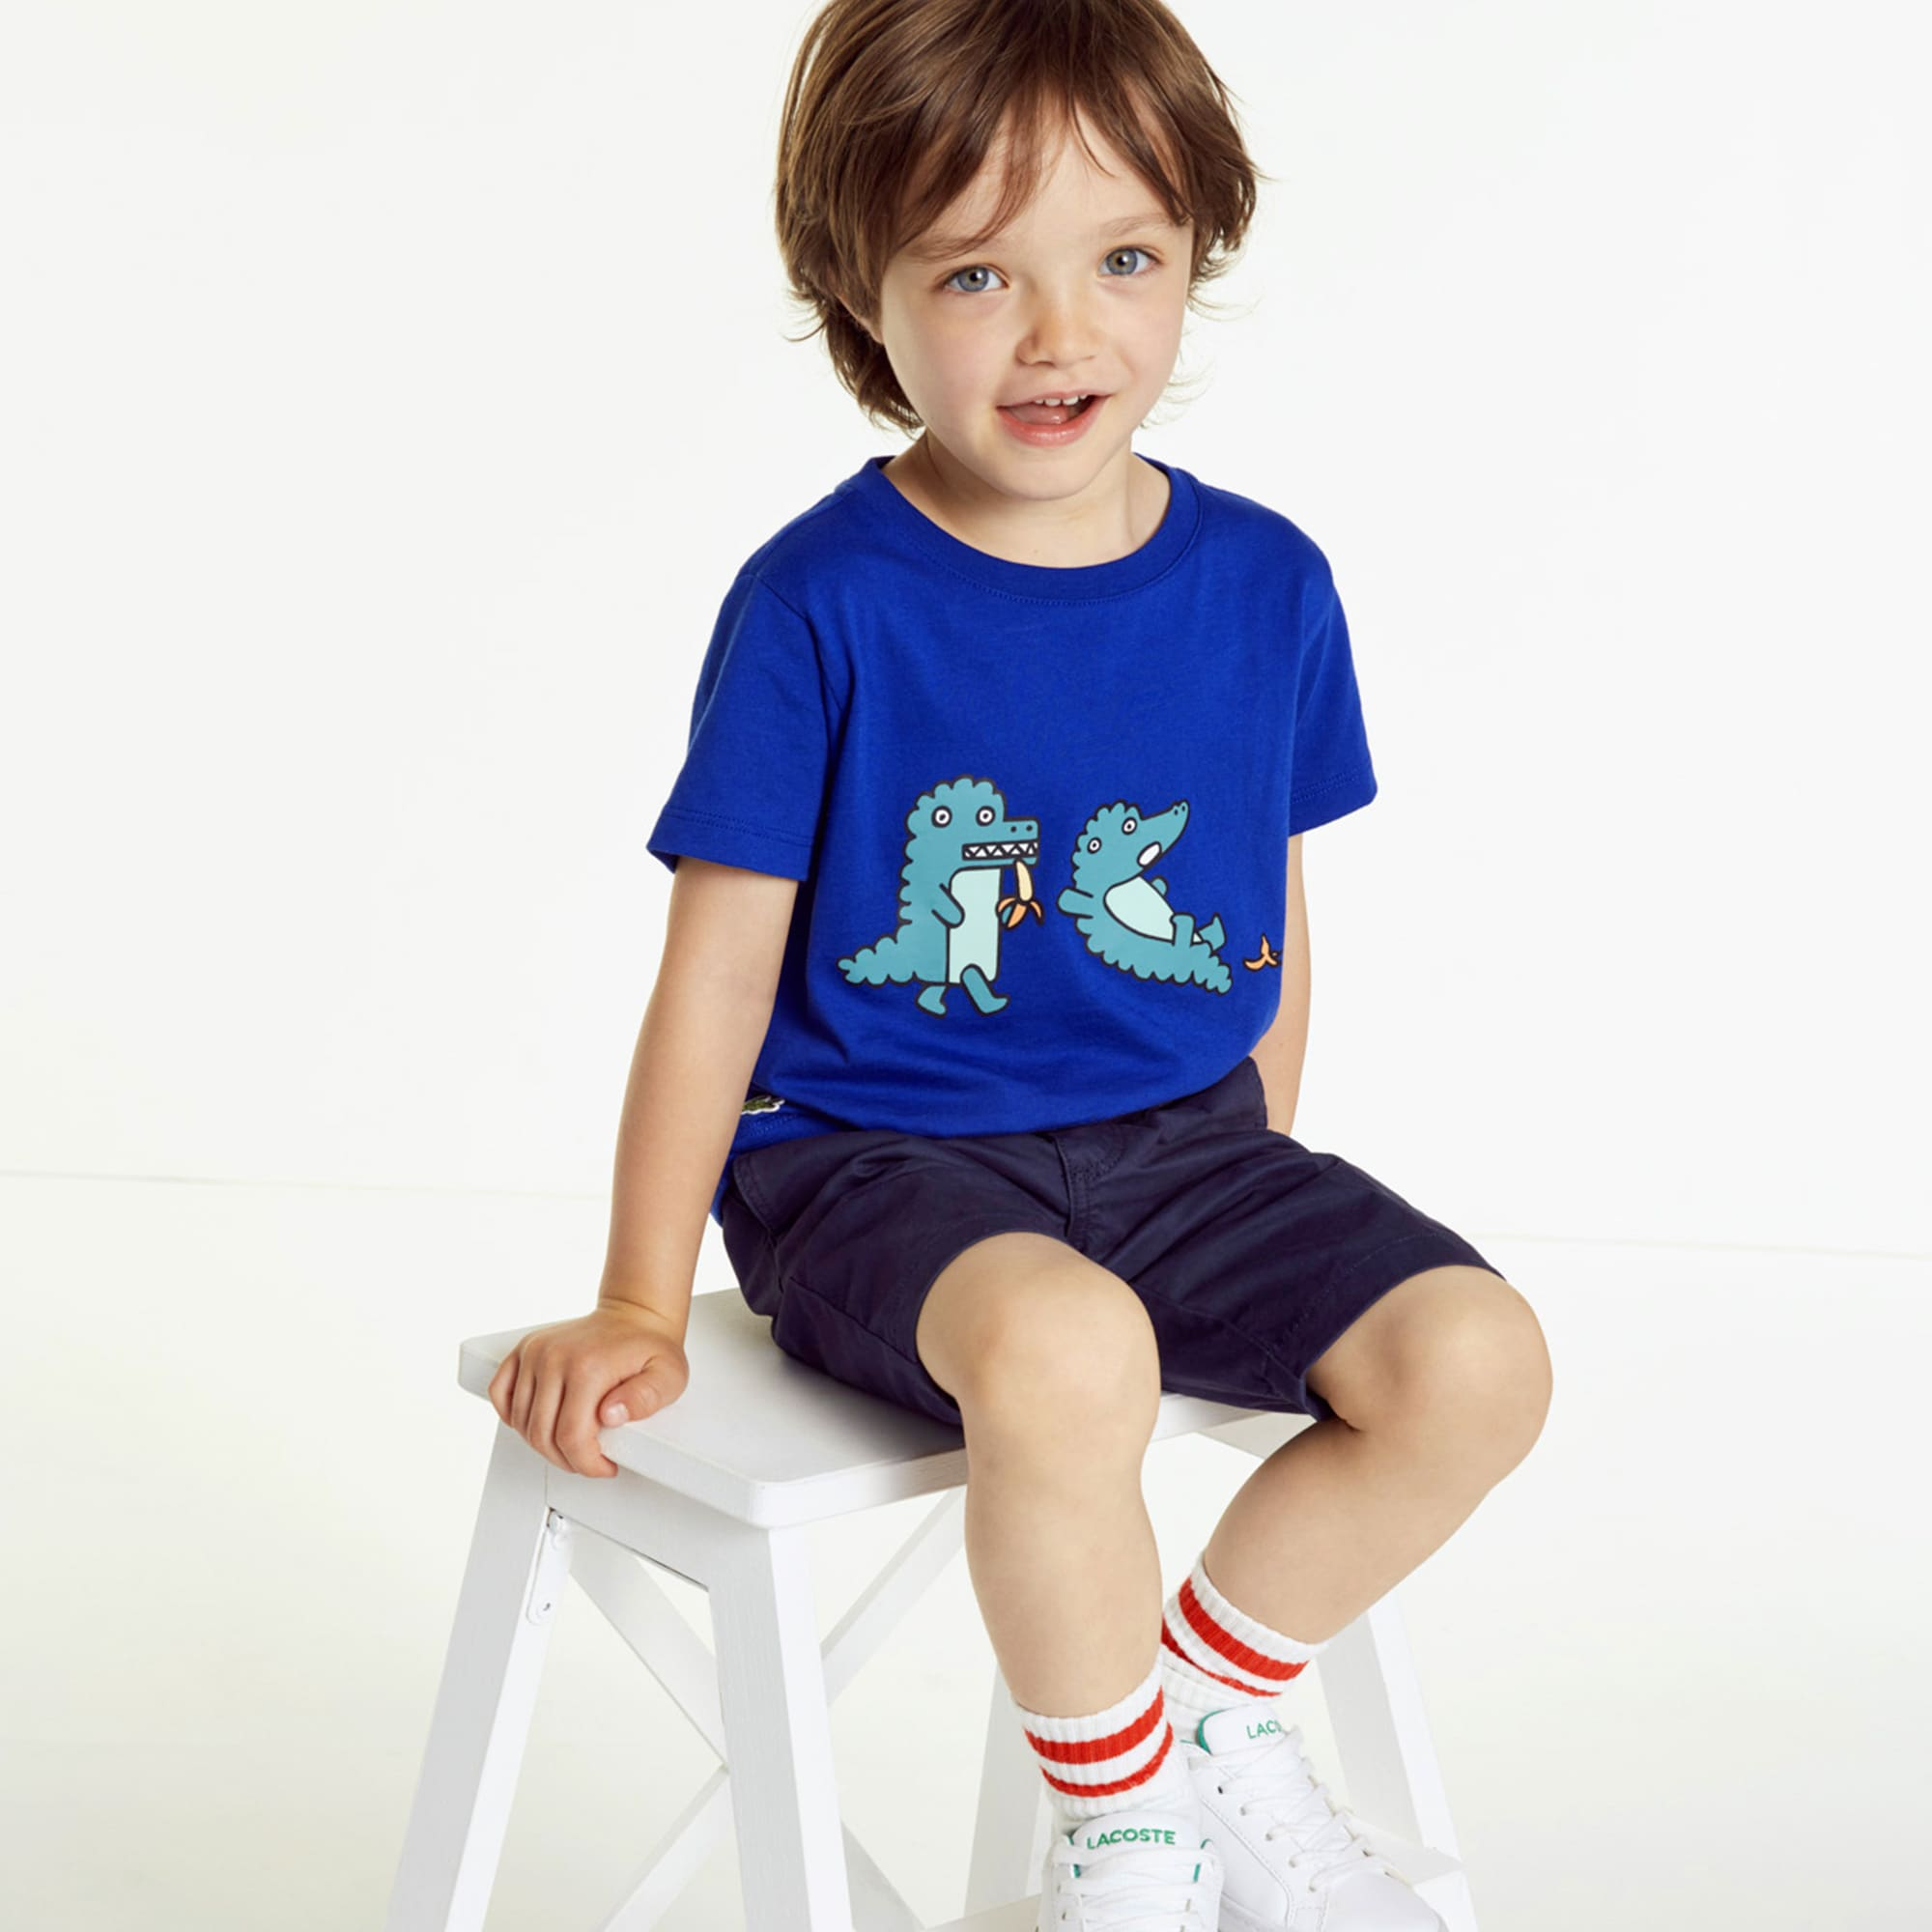 78a5036d47 Boy's Shirts |T-Shirts, Sweaters, Wovens | LACOSTE